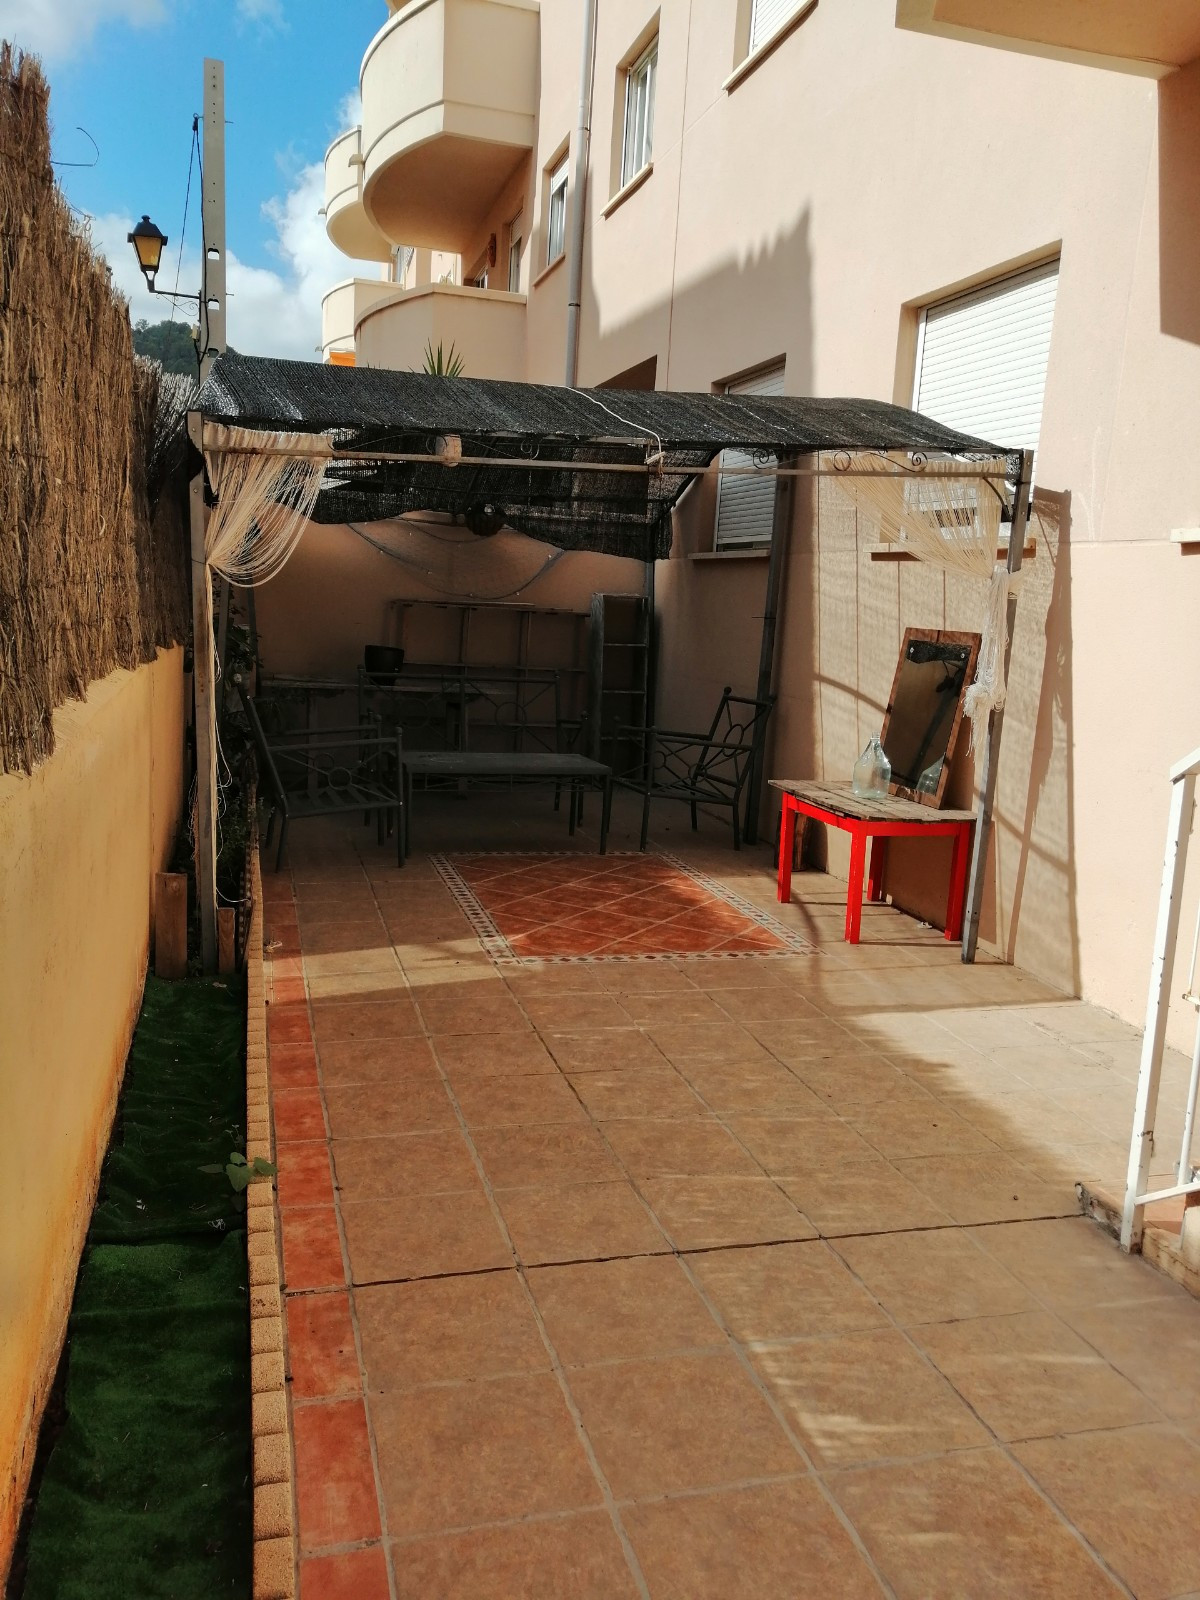 ANDRATX (CLOSE TO THE POLIDEPORTIVO)) Ground floor with 3 bedrooms (2 doubles and one single) with f,Spain